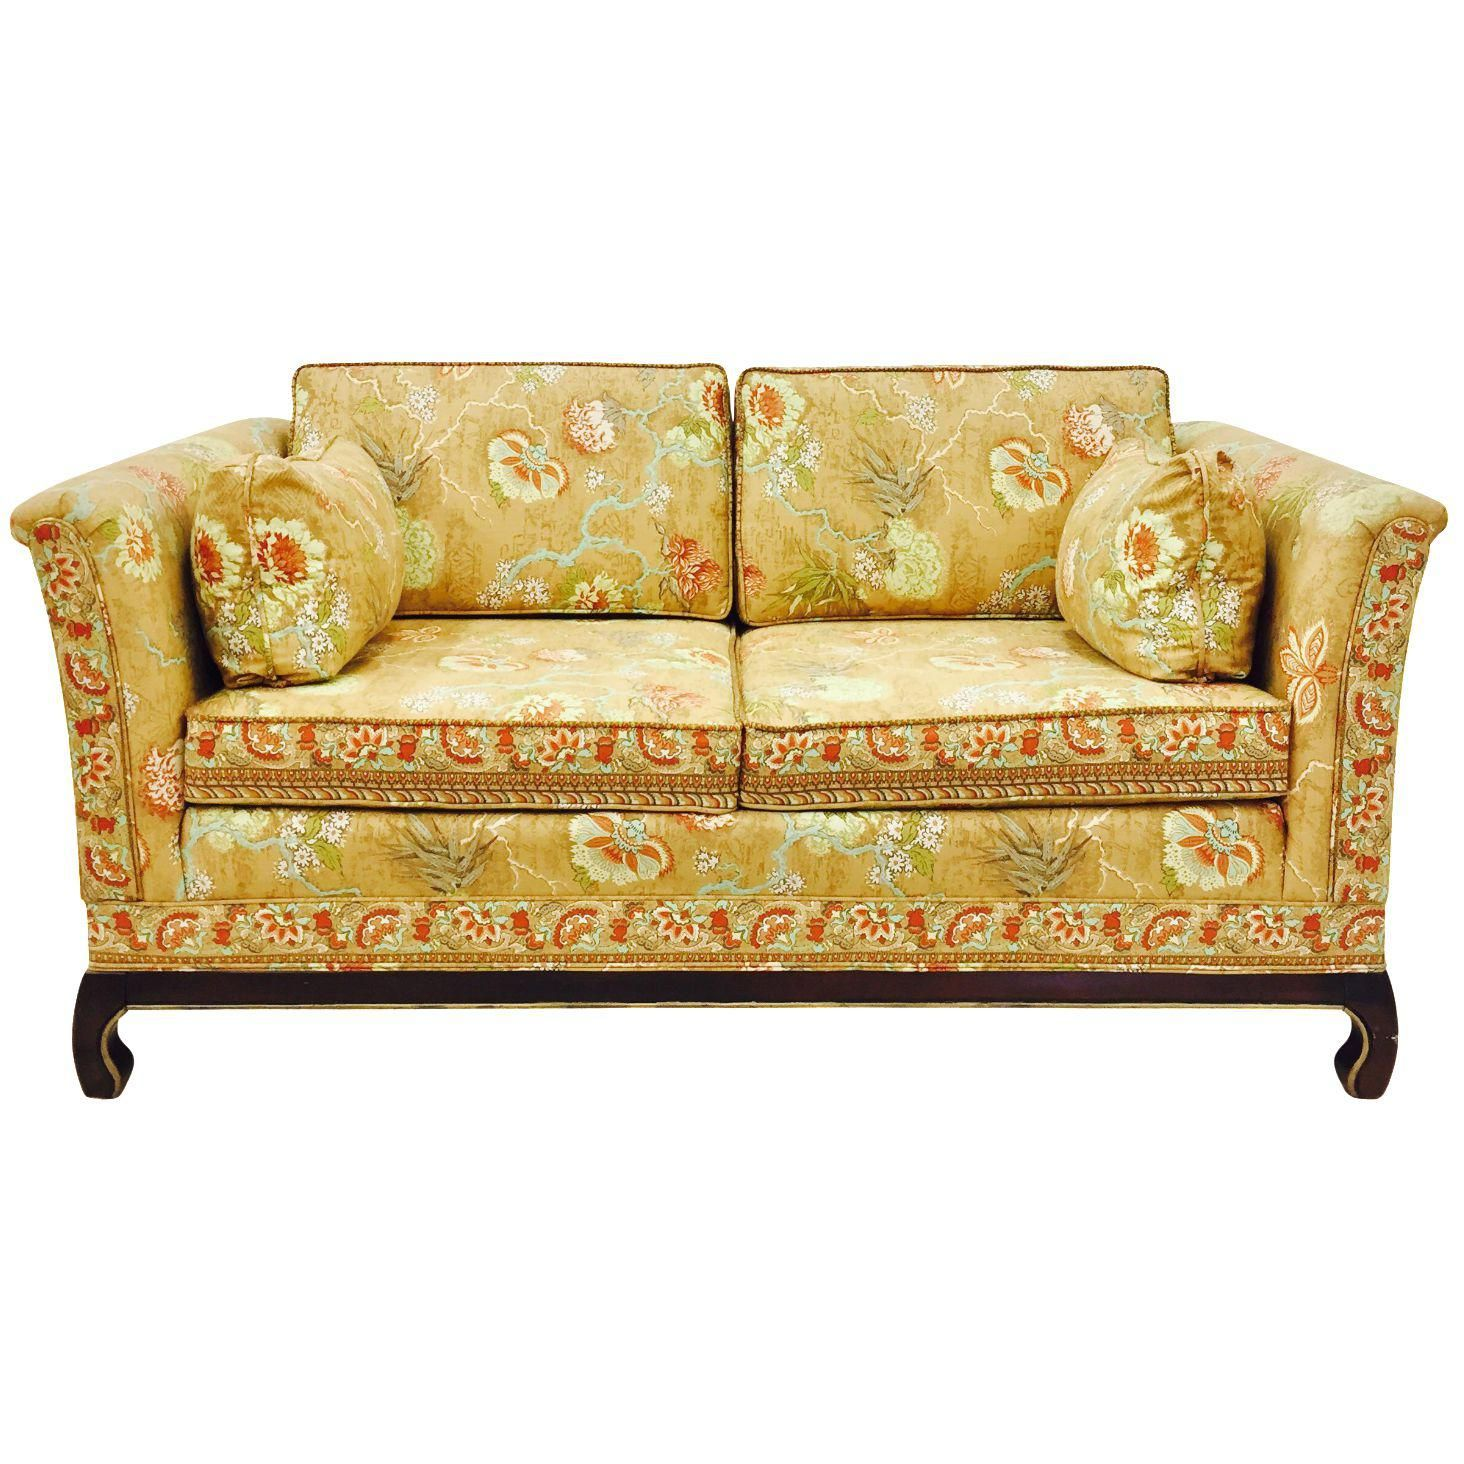 Terrific Mid Century Modern Broyhill Ming Style Loveseat Image 1 Of Ibusinesslaw Wood Chair Design Ideas Ibusinesslaworg